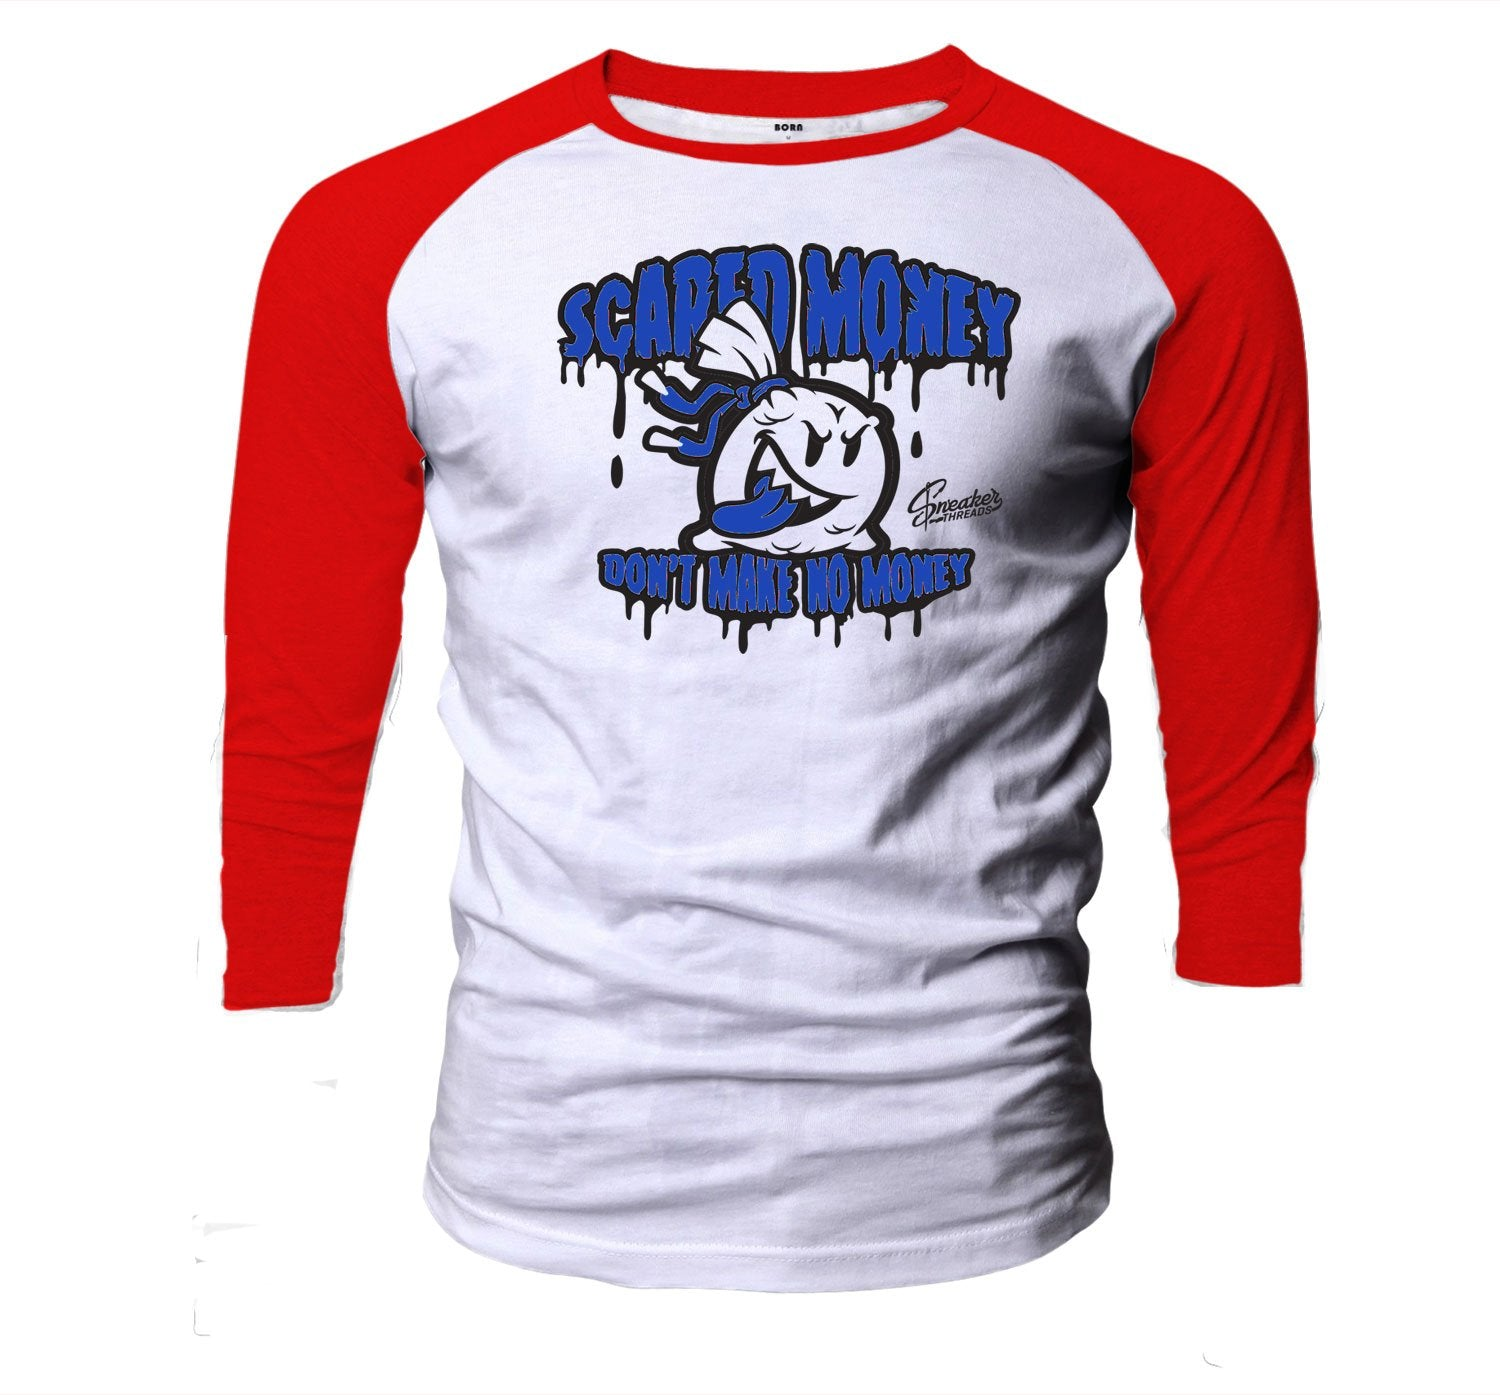 Jordan 4 Loyal Blue Scared Money Sick Raglan